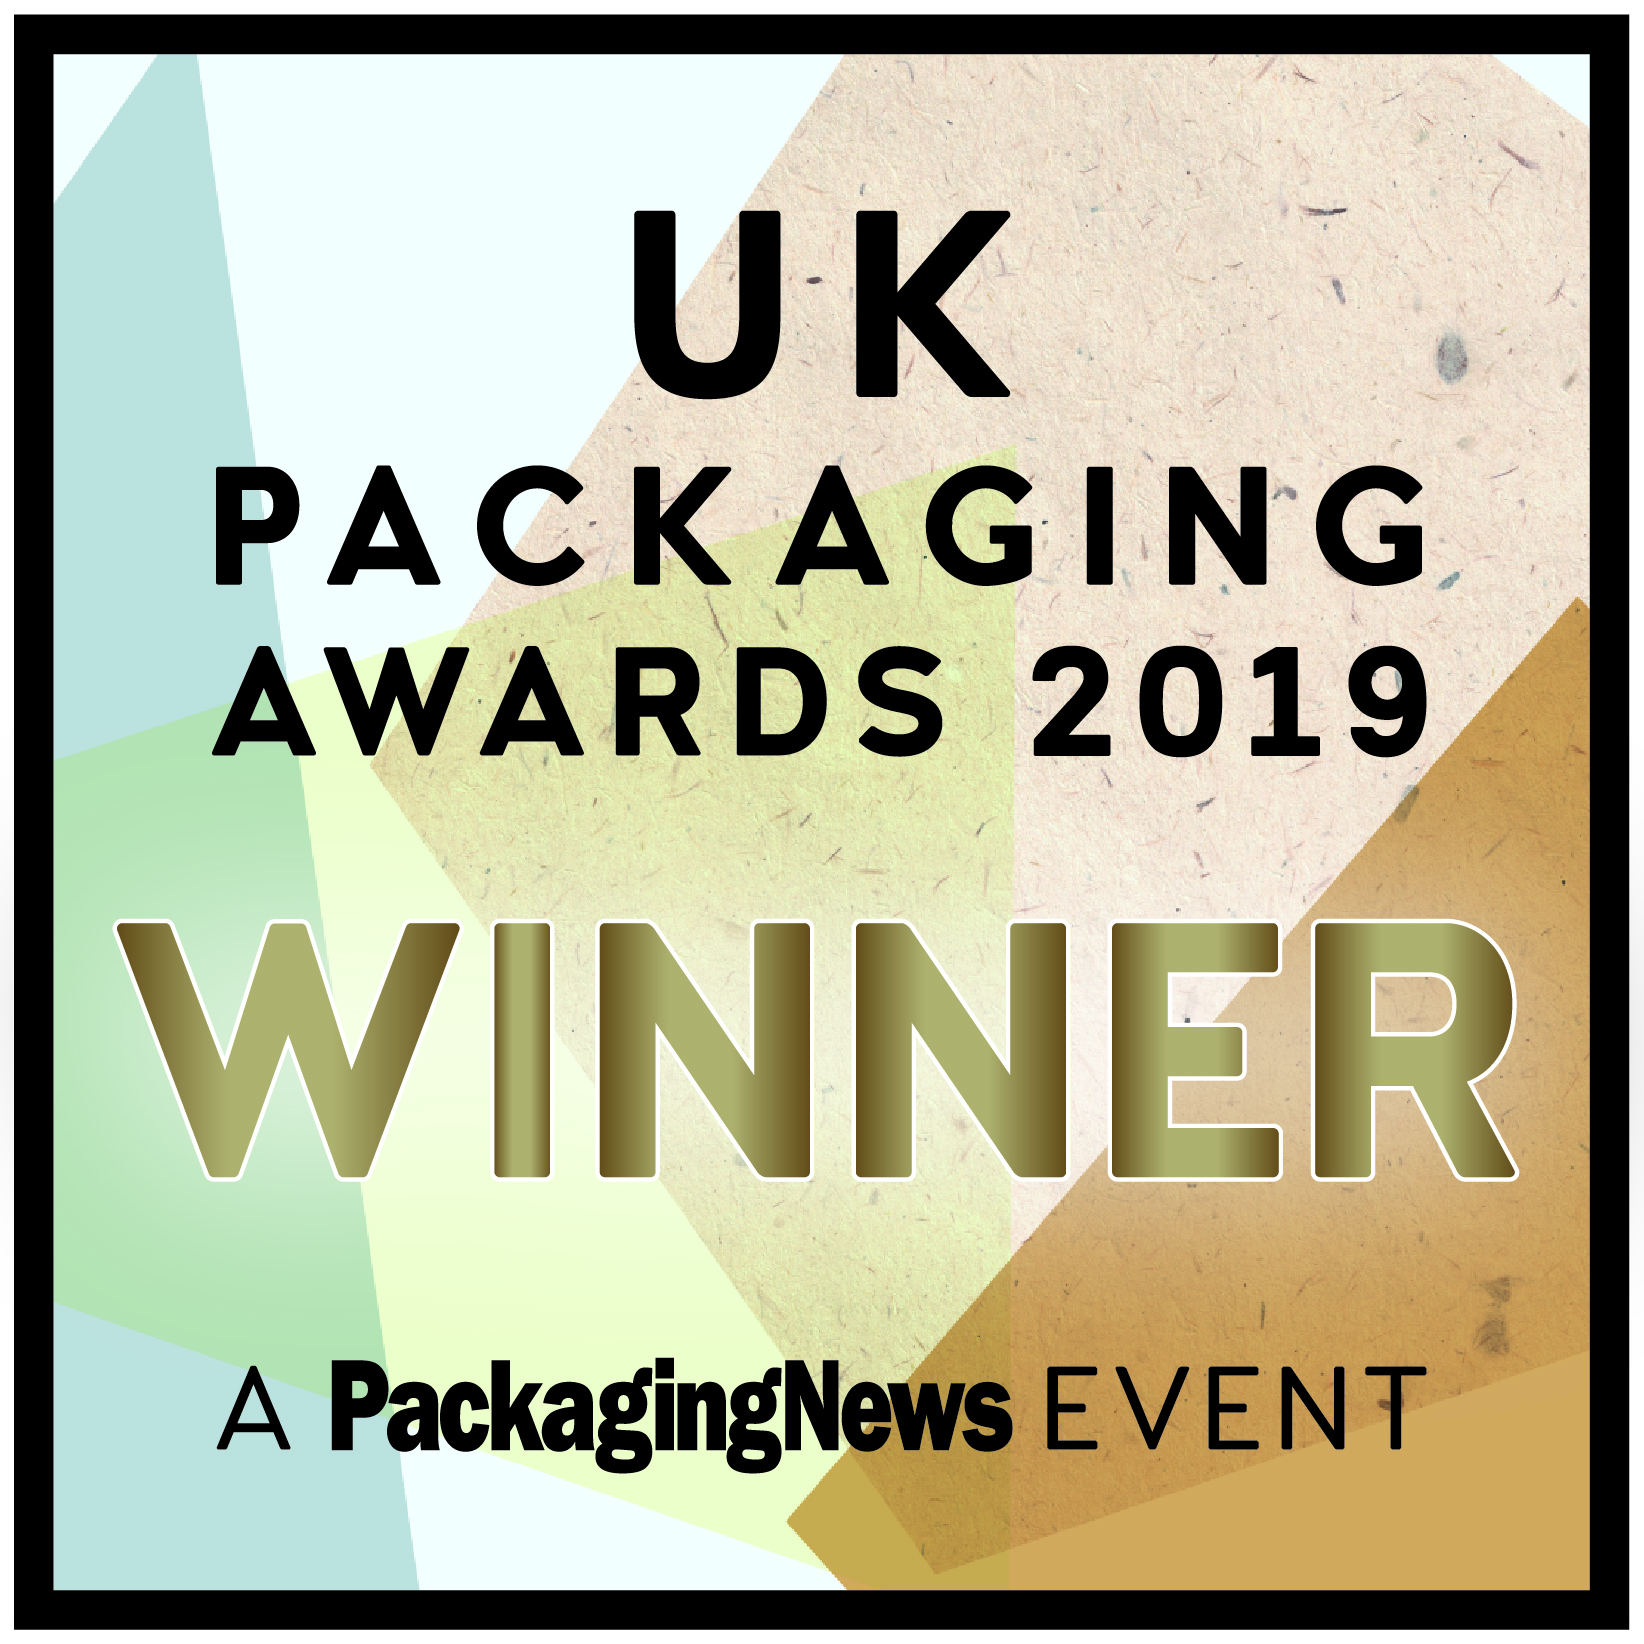 UK Packaging Awards Innovation of the Year 2019